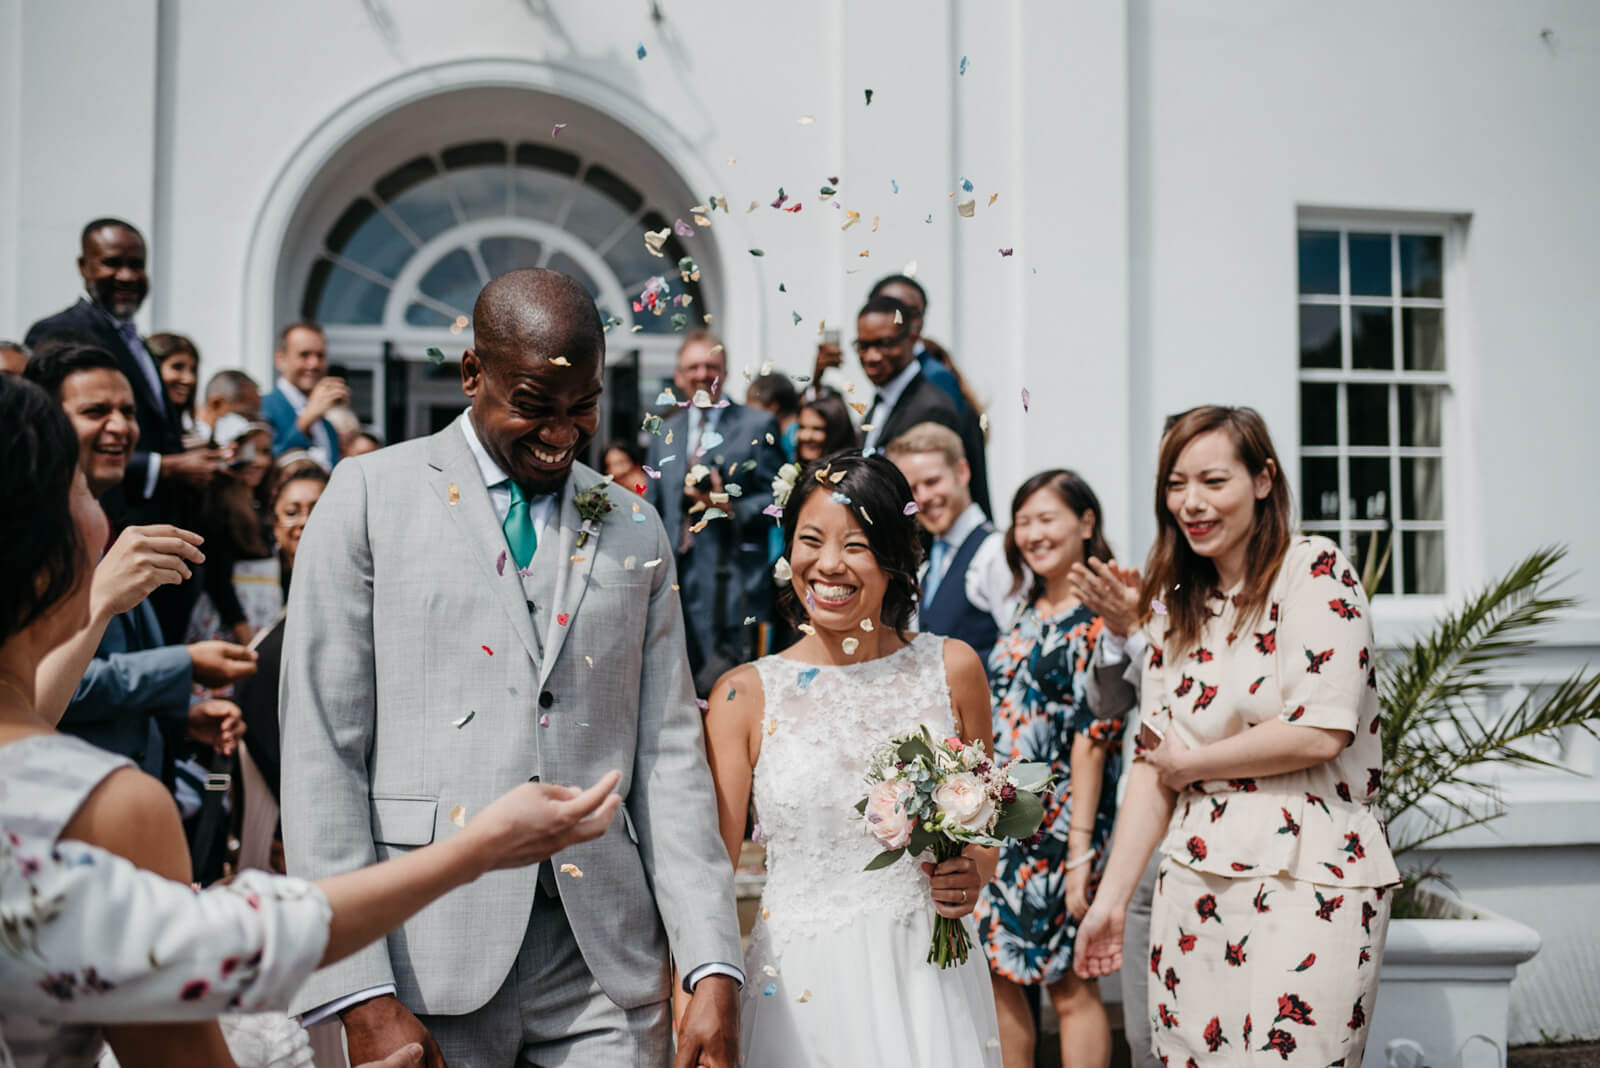 Confetti thrown over bride and groom at Belair House wedding